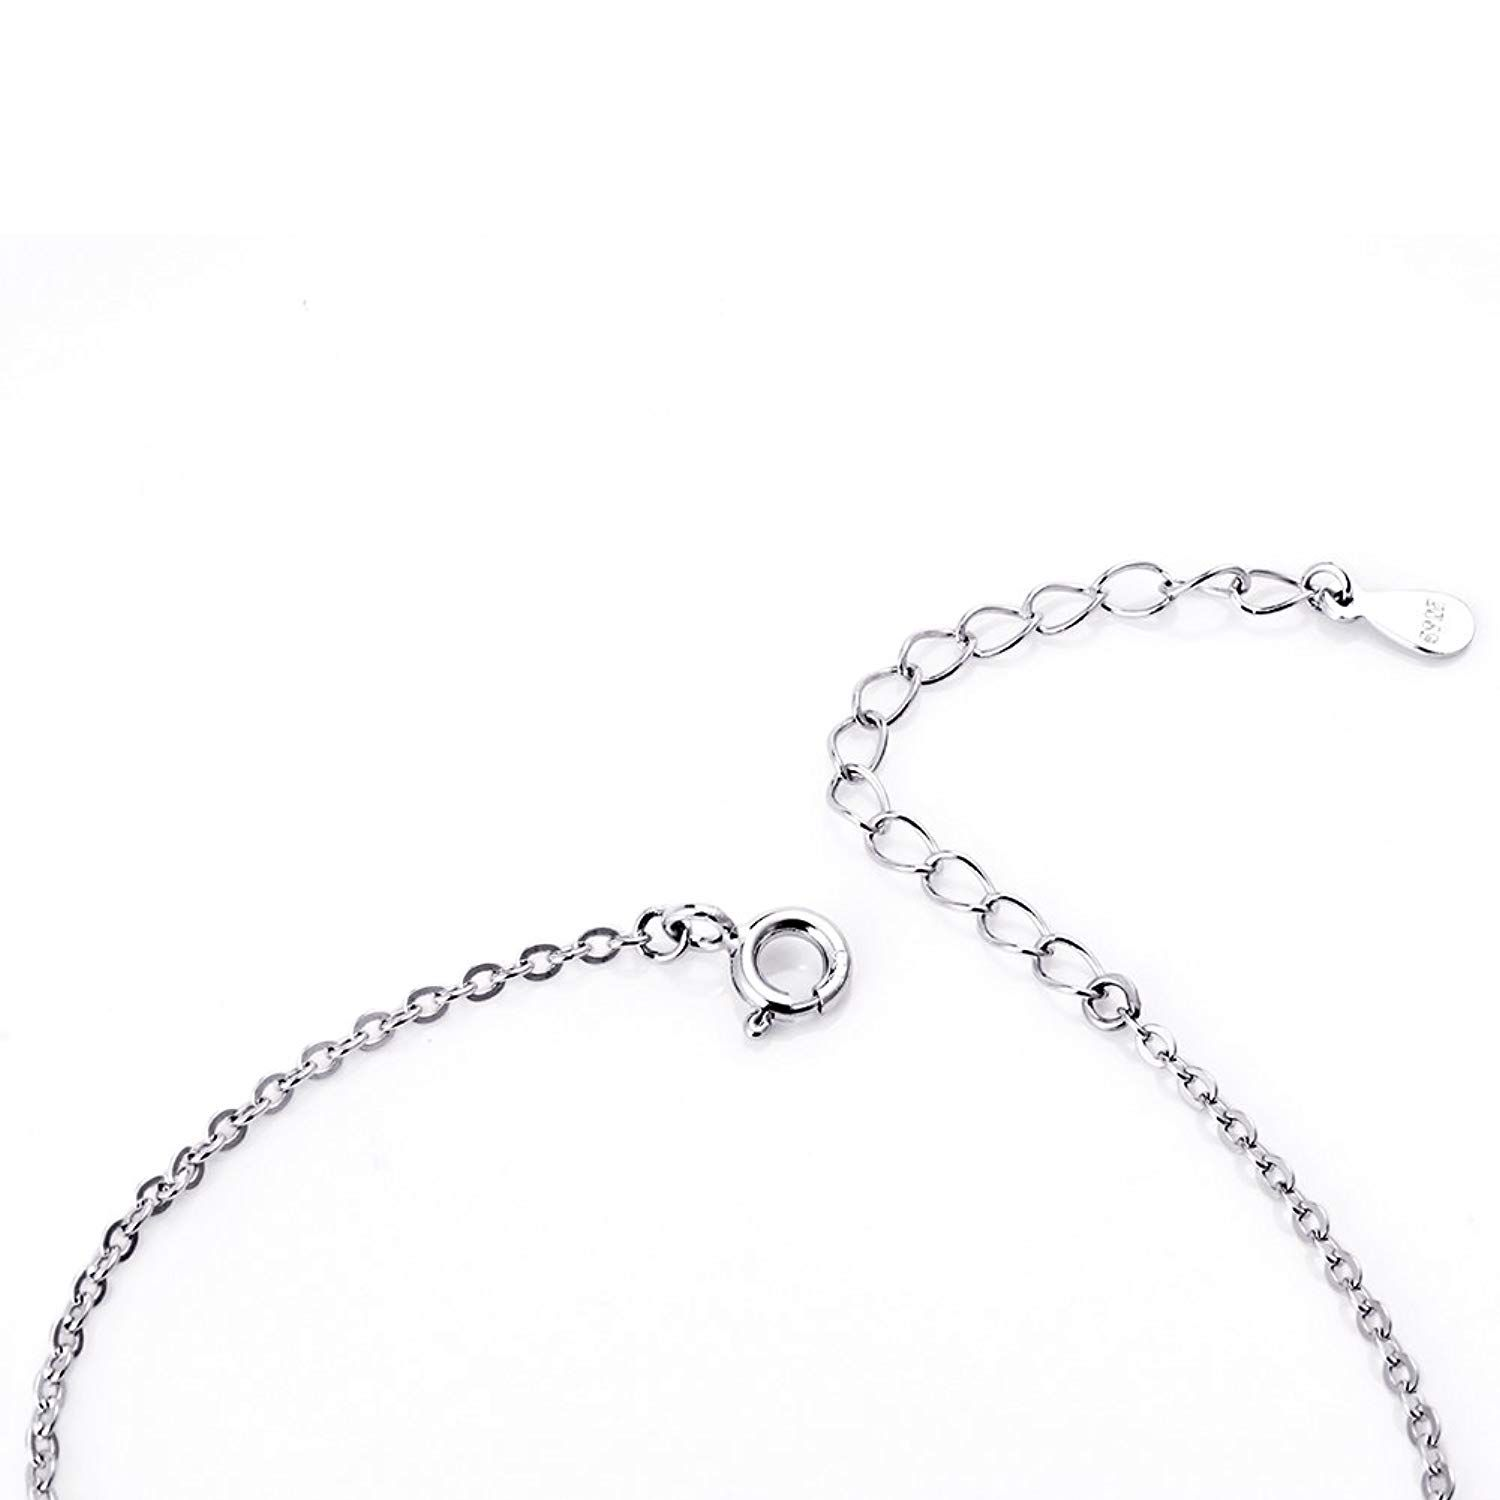 Musical note adjustable bangle bracelet sterling silver jewelry